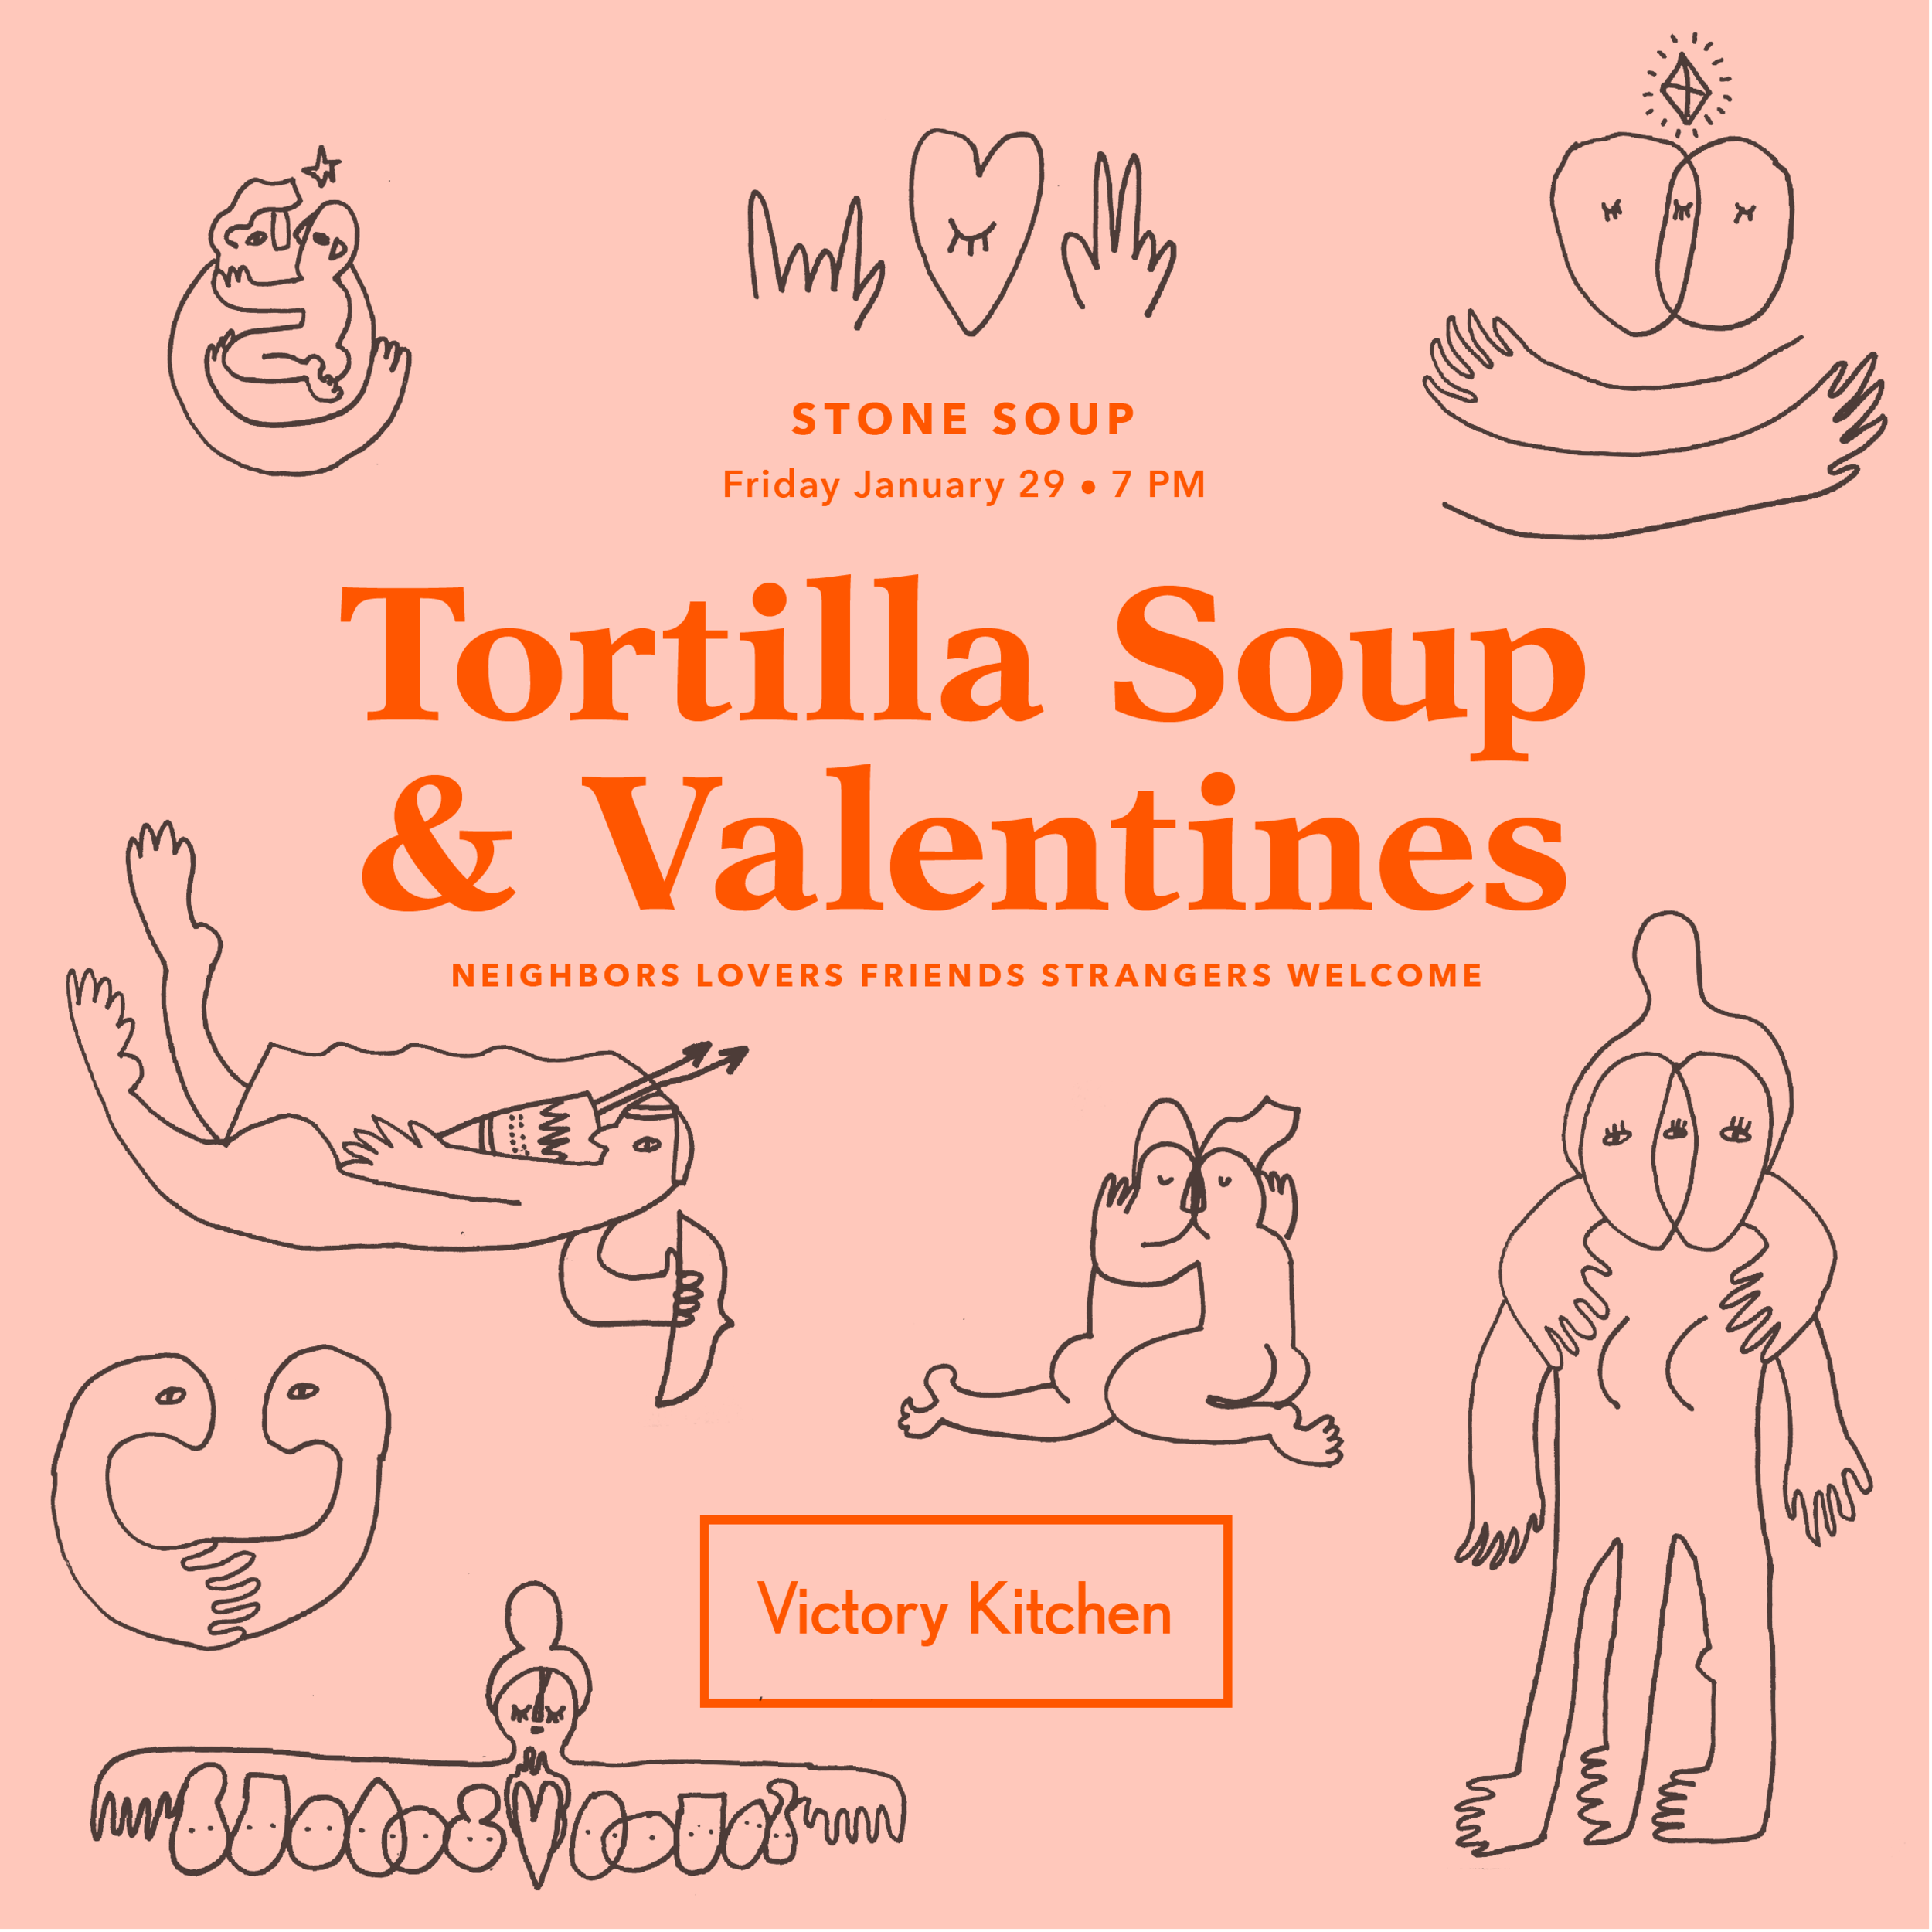 stonesoup_flyer_012916-01.png